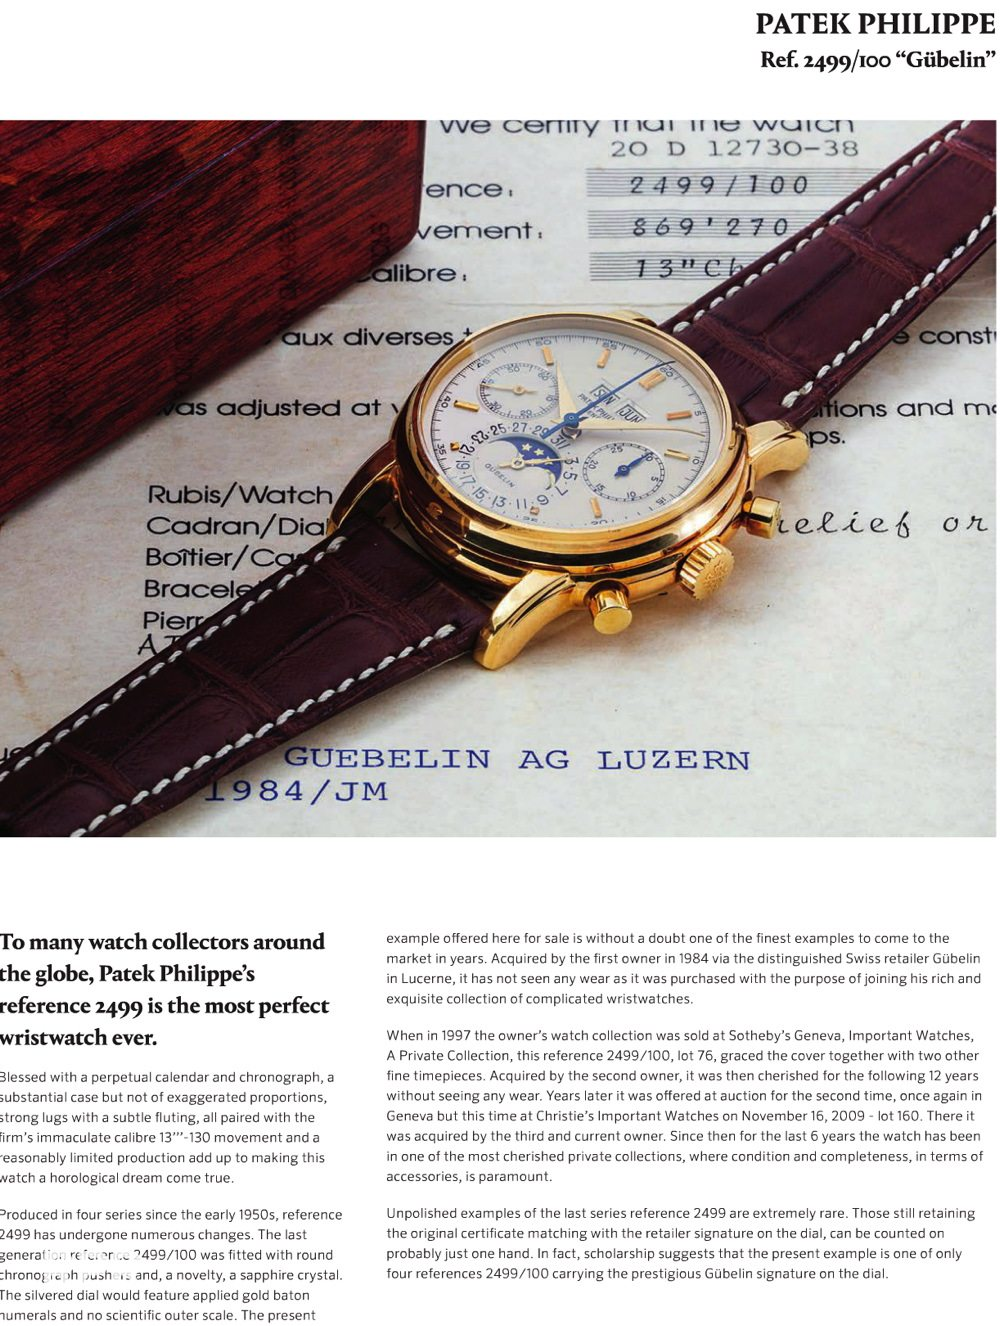 RPR_Rolex_geneva_auction_2015_47